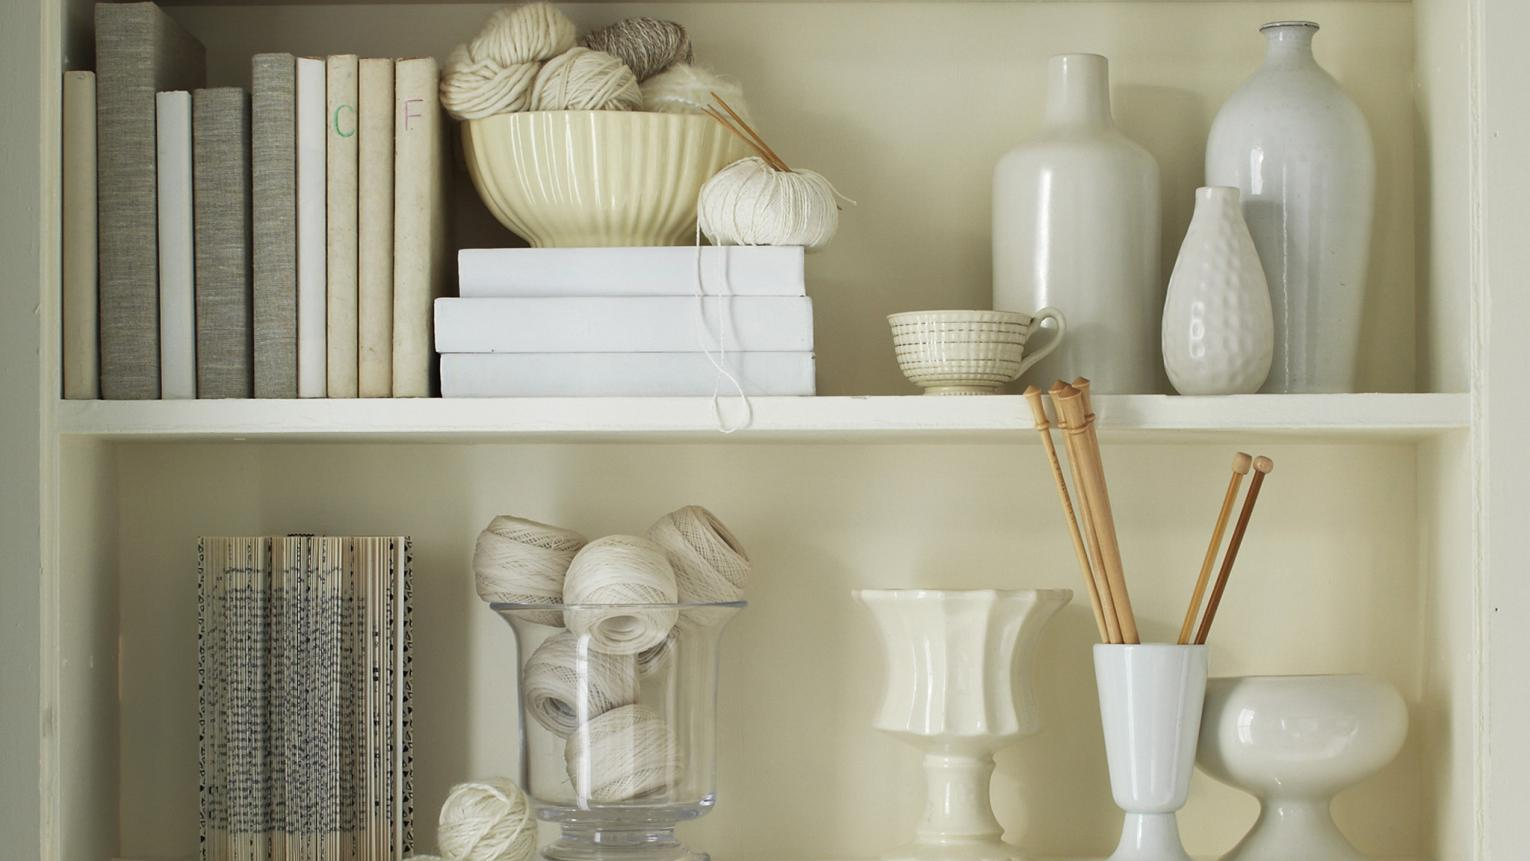 Bookshelves filled with vases, books and precious mementos in beautiful shades of white and off-white.